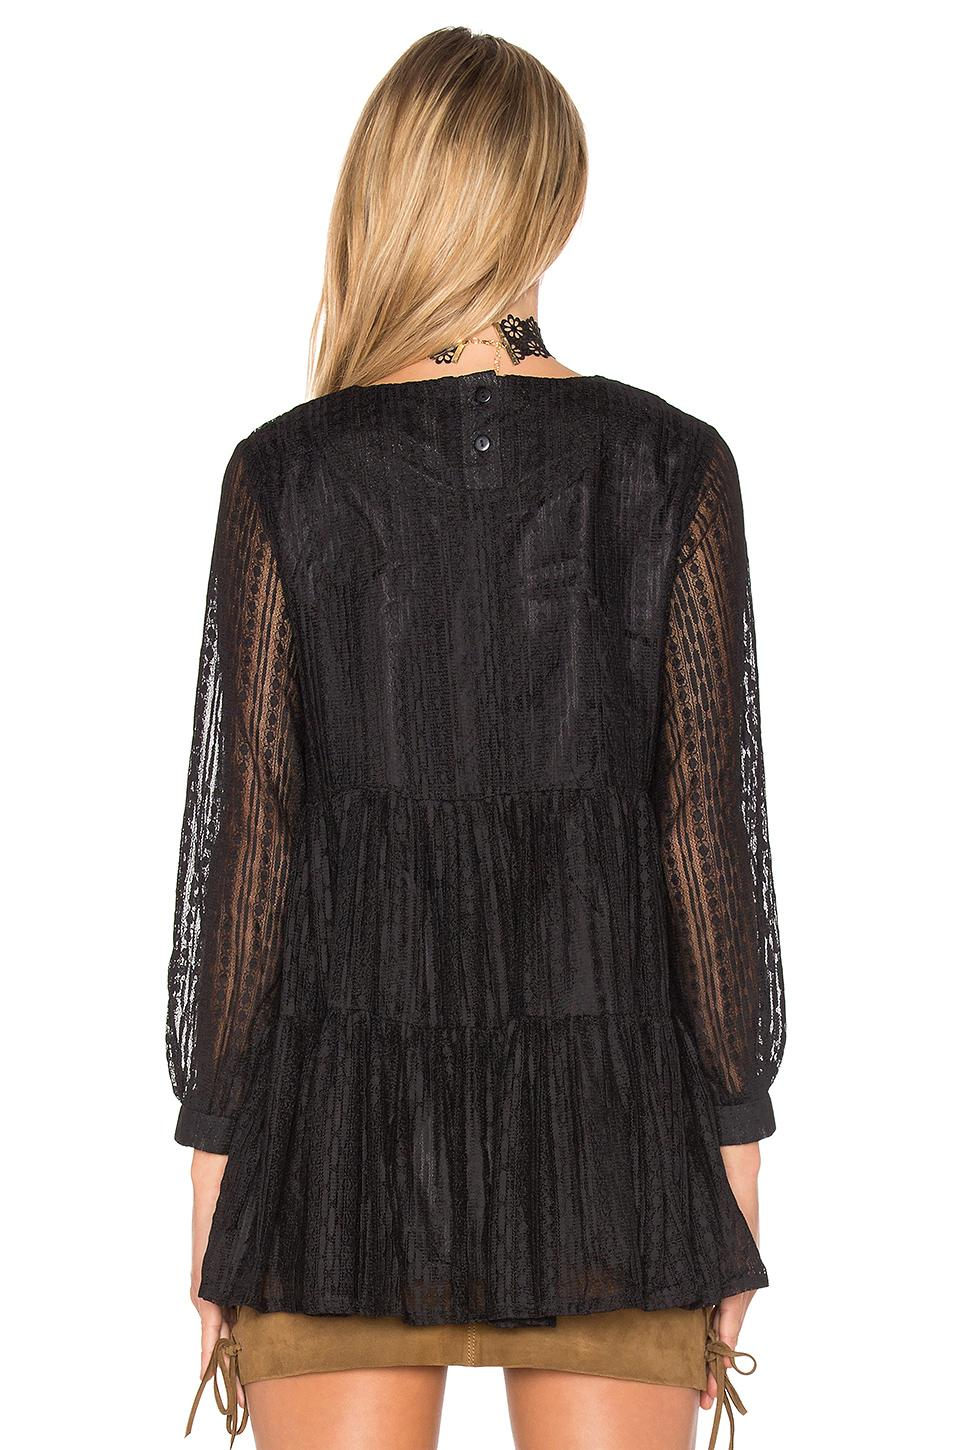 More Amore Lace Tunic in Black Raga Cheapest Online Discount Best Prices lBE6NtD82h